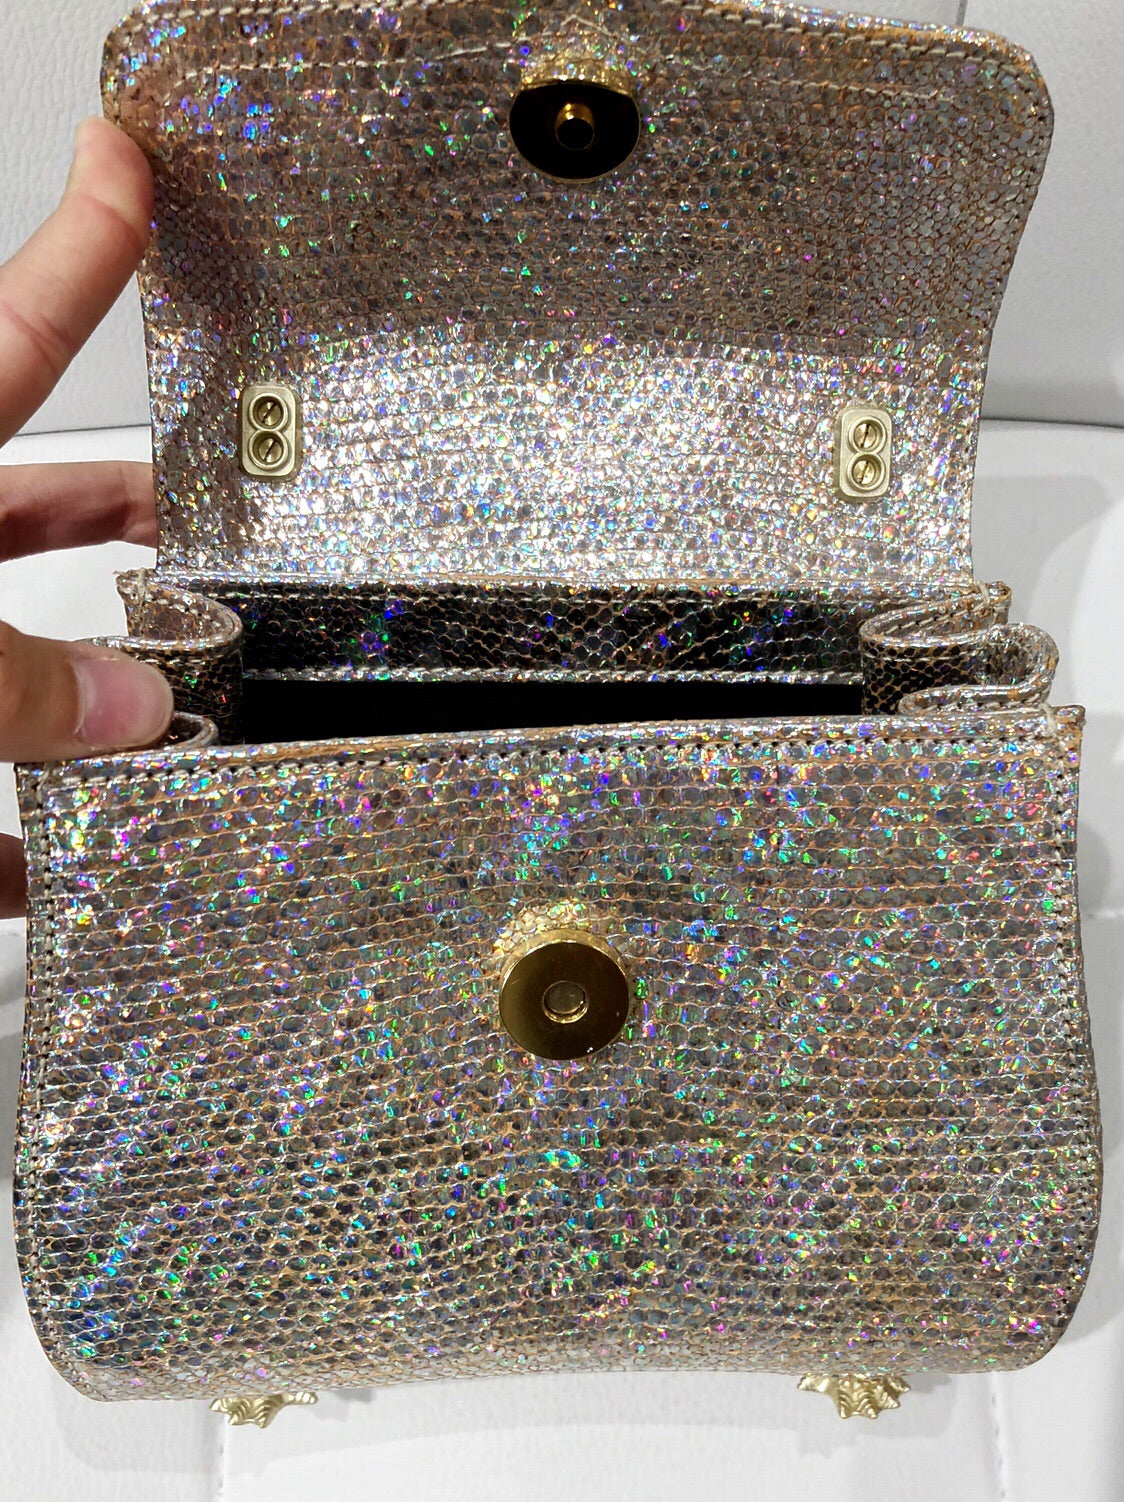 Sale Pending Barry Kieselstein-Cord holographic Trophy bag